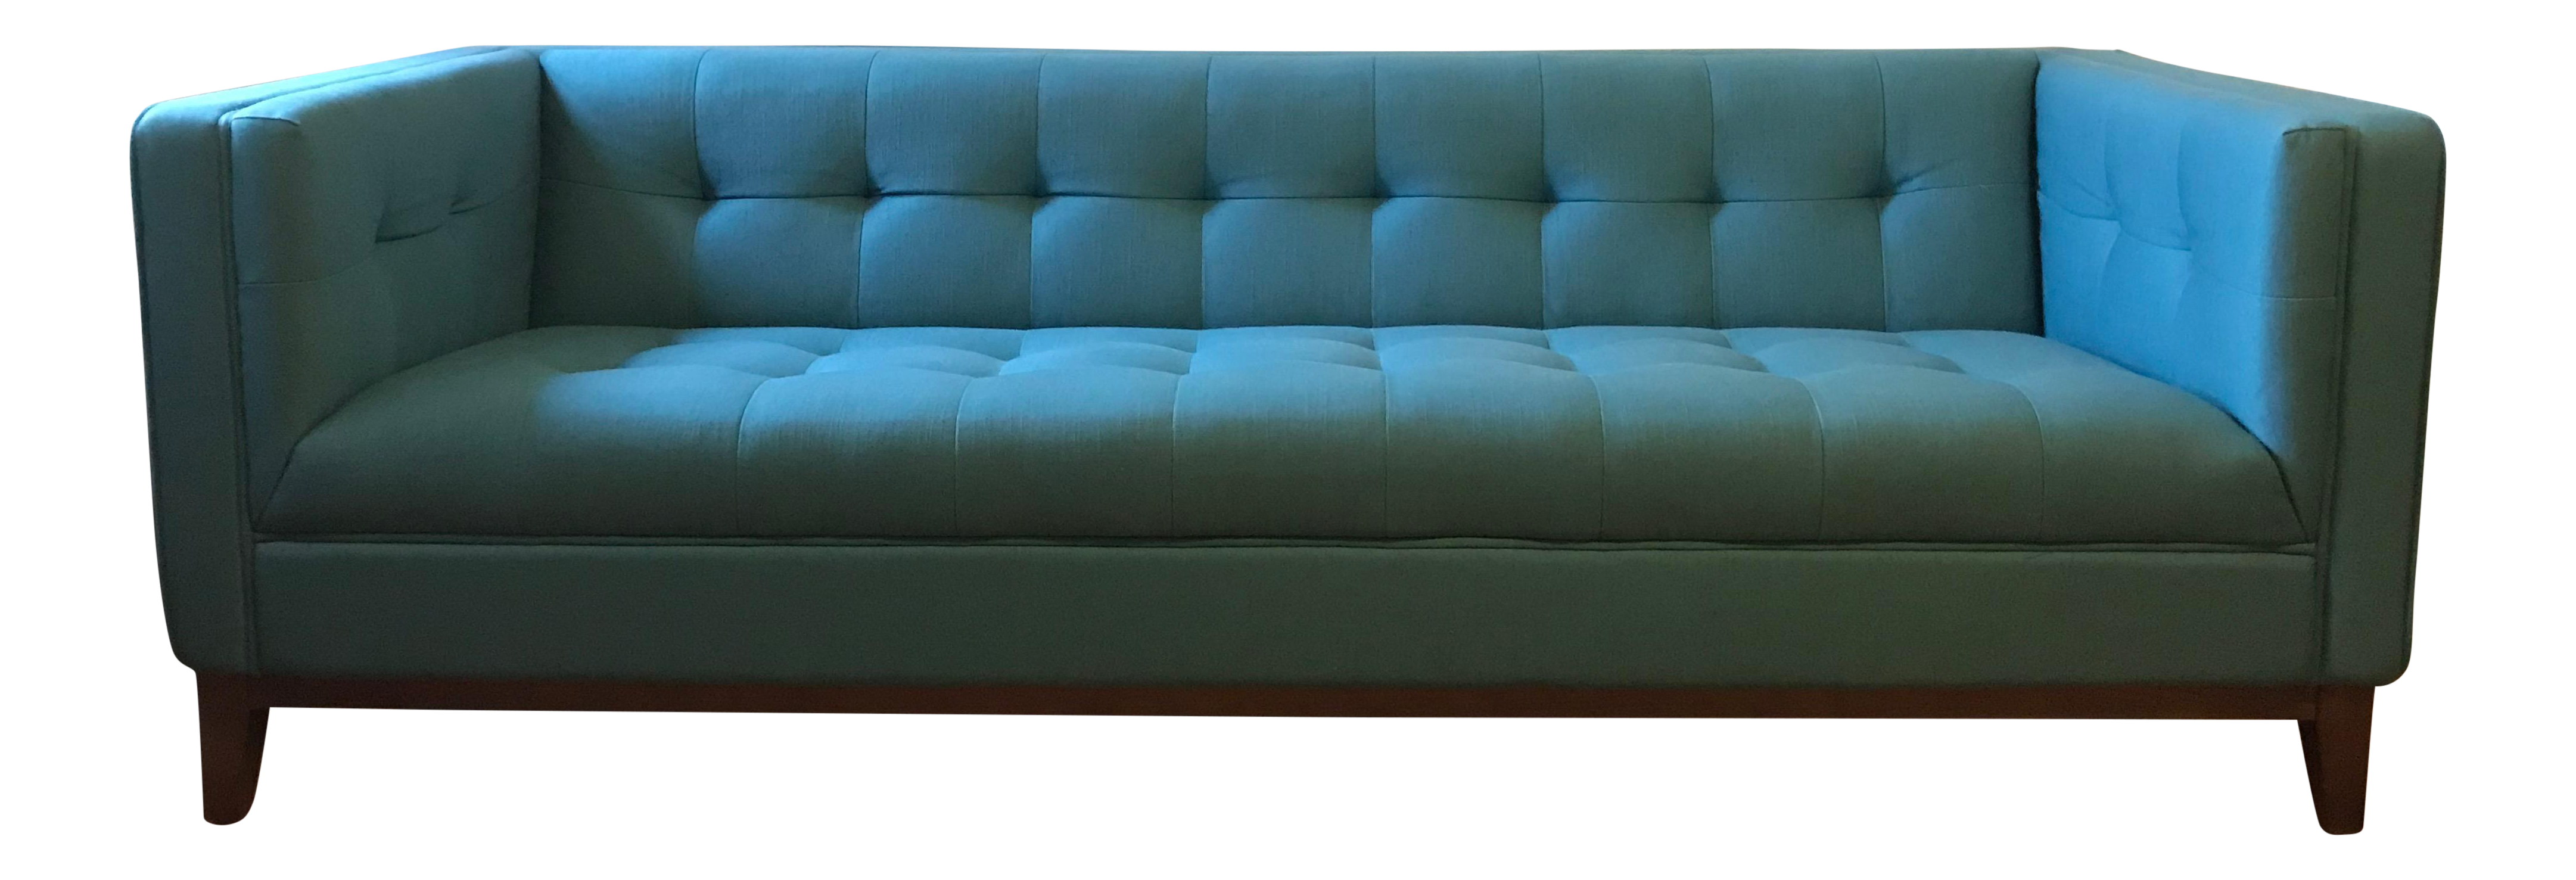 Atwood Sofa By Gus Modern For Sale